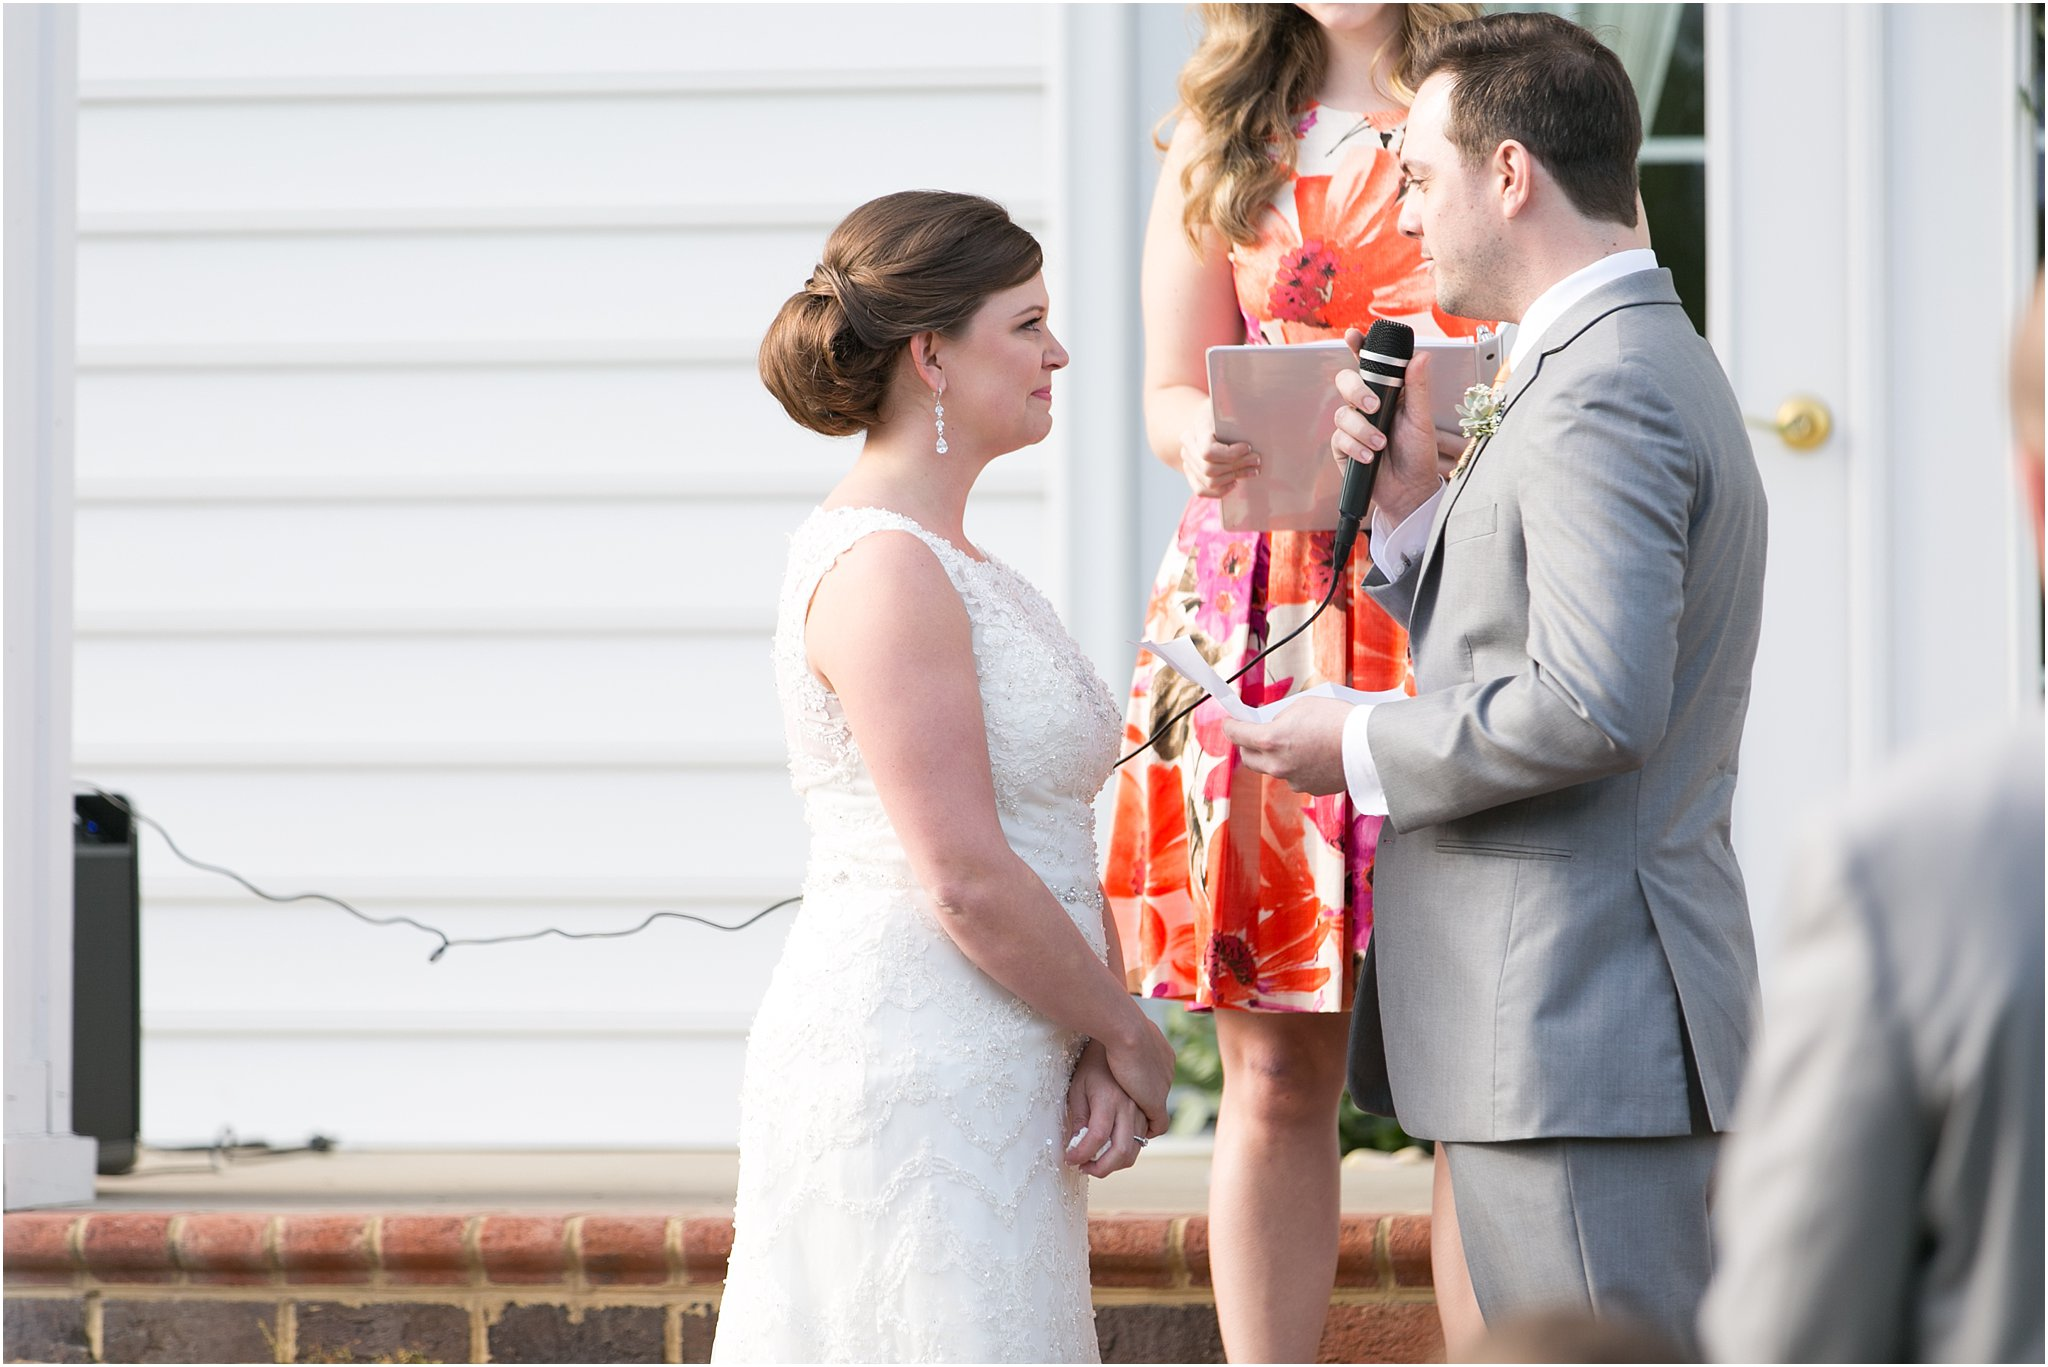 jessica_ryan_photography_holly_ridge_manor_wedding_roost_flowers_jamie_leigh_events_dhalia_edwards_candid_vibrant_wedding_colors_1299